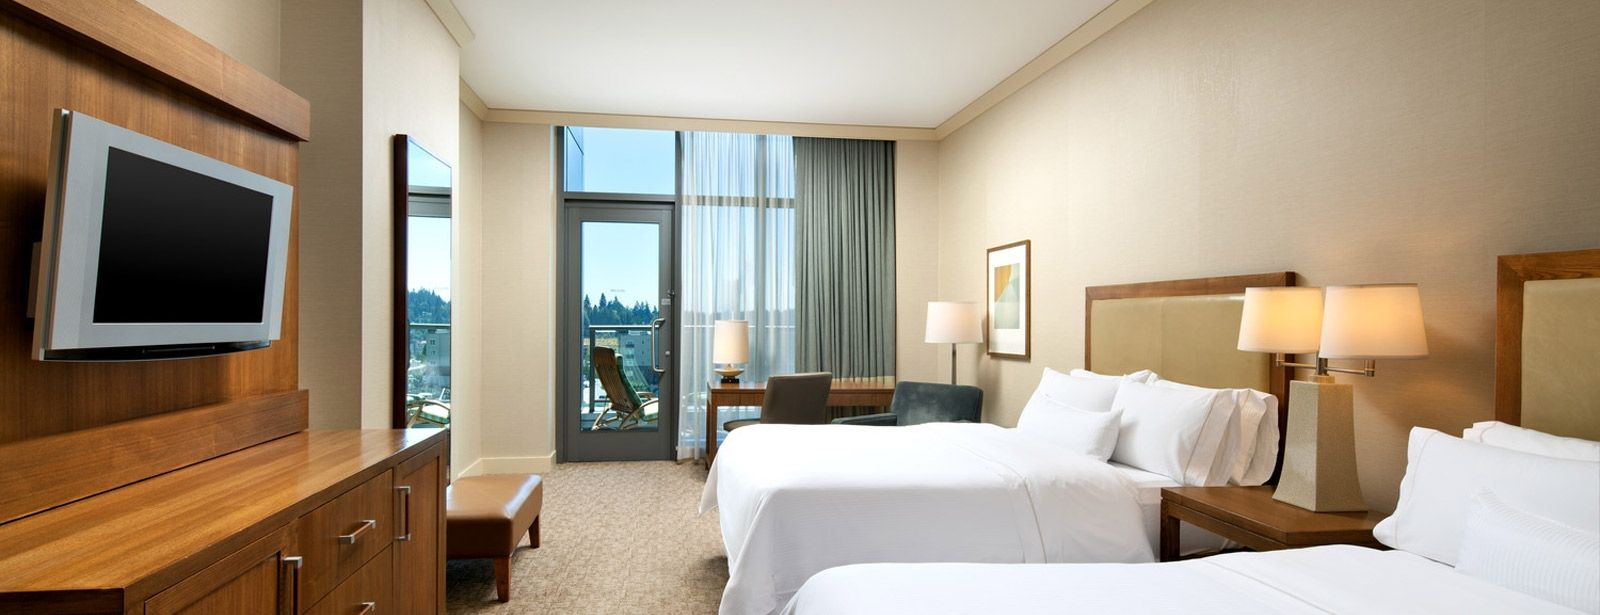 The Westin Bellevue Hotel - Grand Deluxe Room